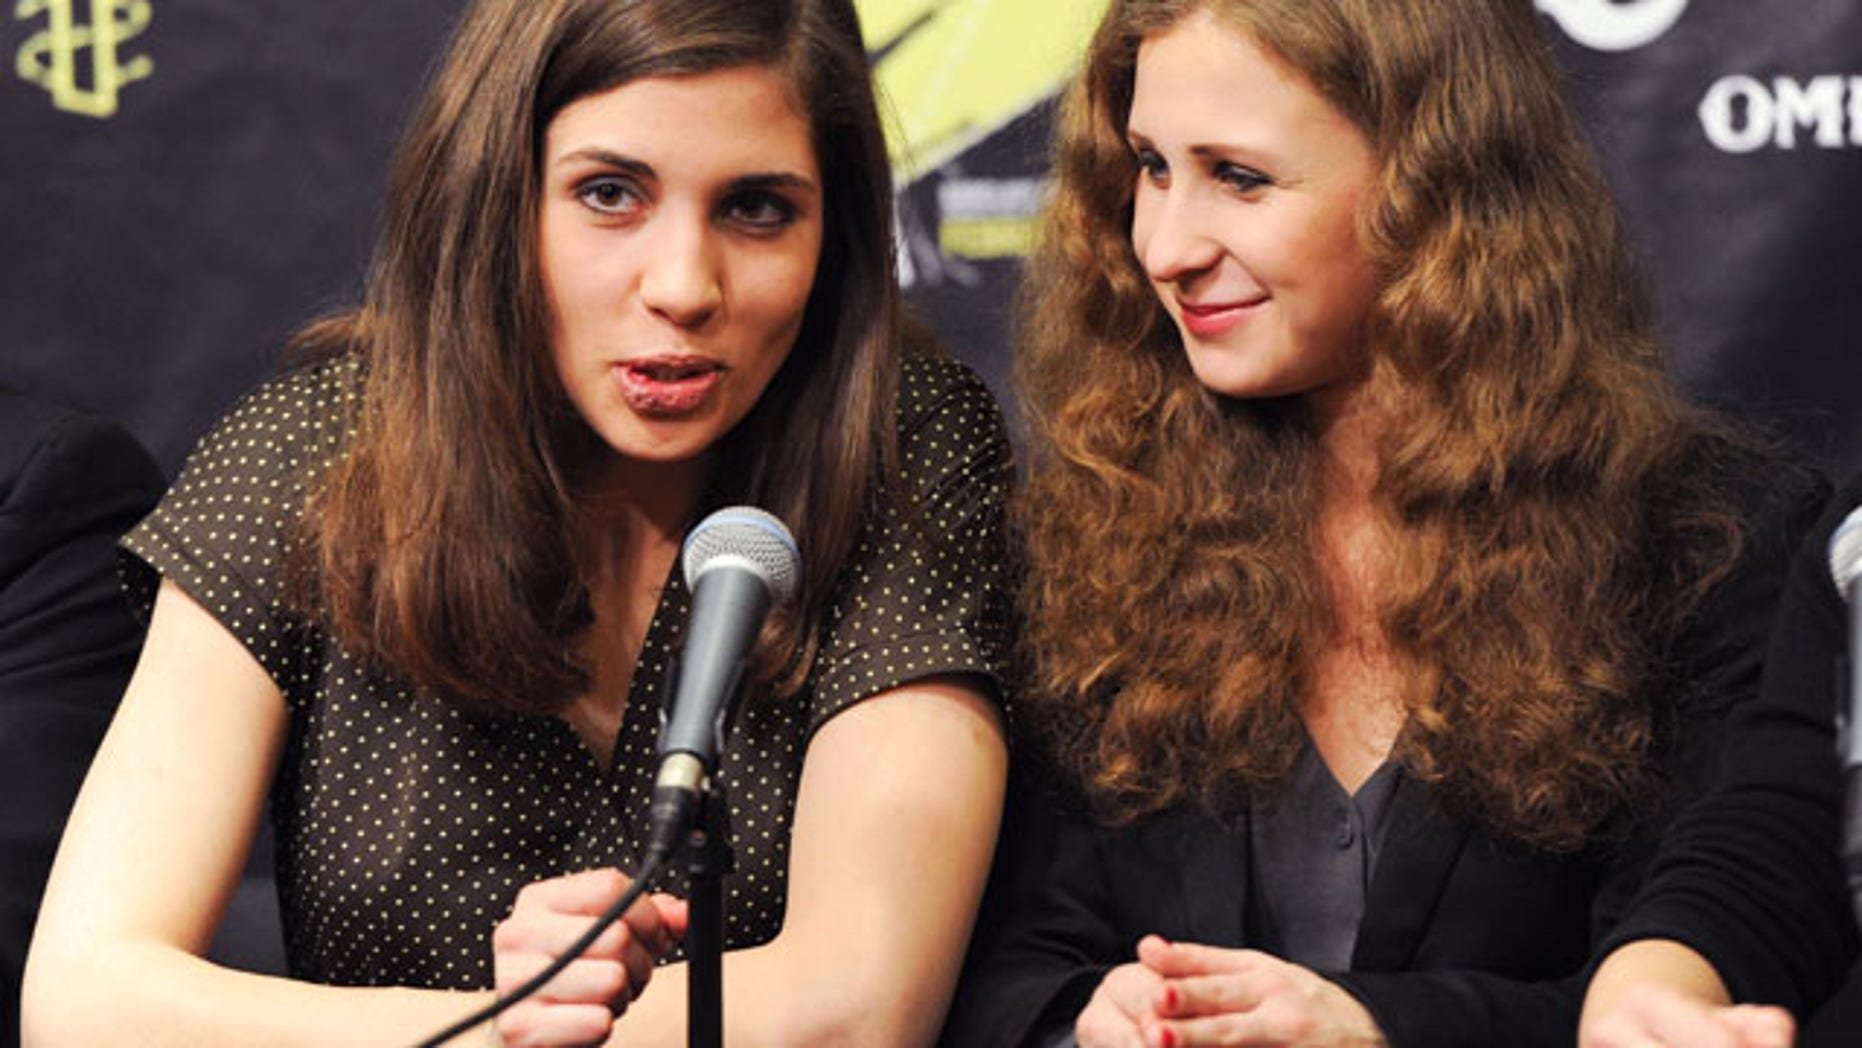 """FILE - In this Feb. 5, 2014 file photo, Nadezhda """"Nadya"""" Tolokonnikova, left, and Maria """"Masha"""" Alekhina of Pussy Riot, participate in a press conference for Amnesty International's """"Bringing Human Rights Home"""" concert at the Barclays Center in New York. (AP)"""